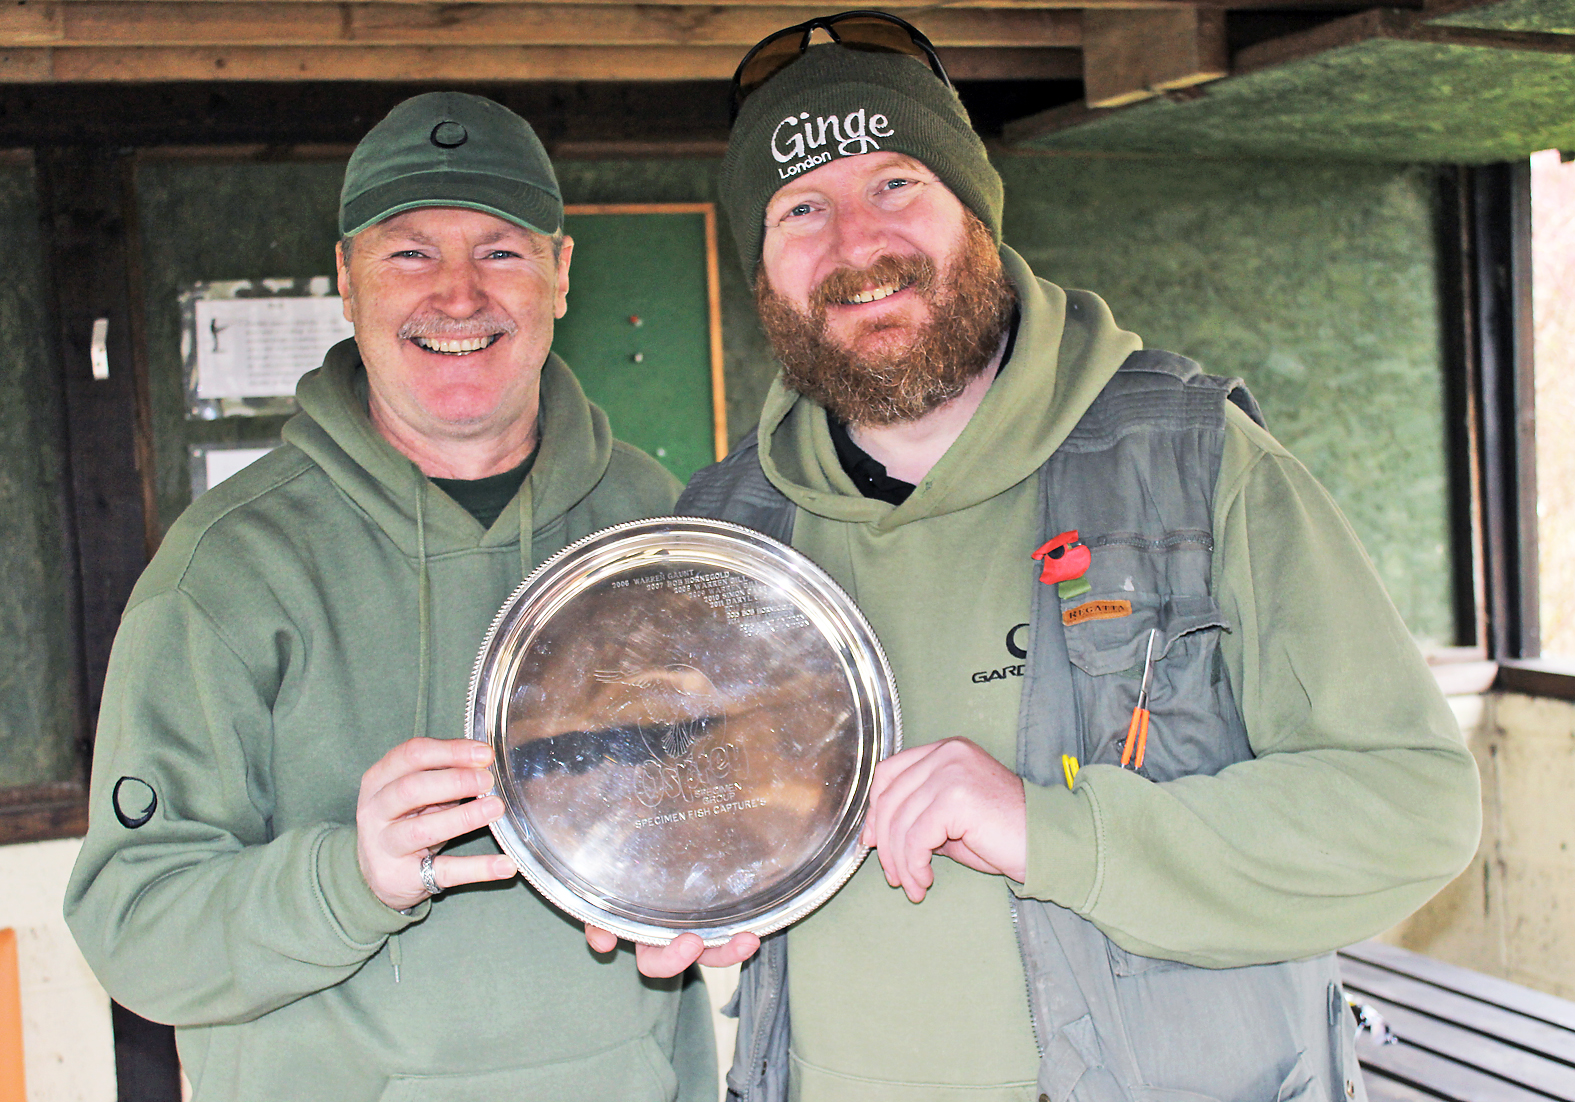 It's a pleasure to present Mike with the Osprey Salver for some top angling